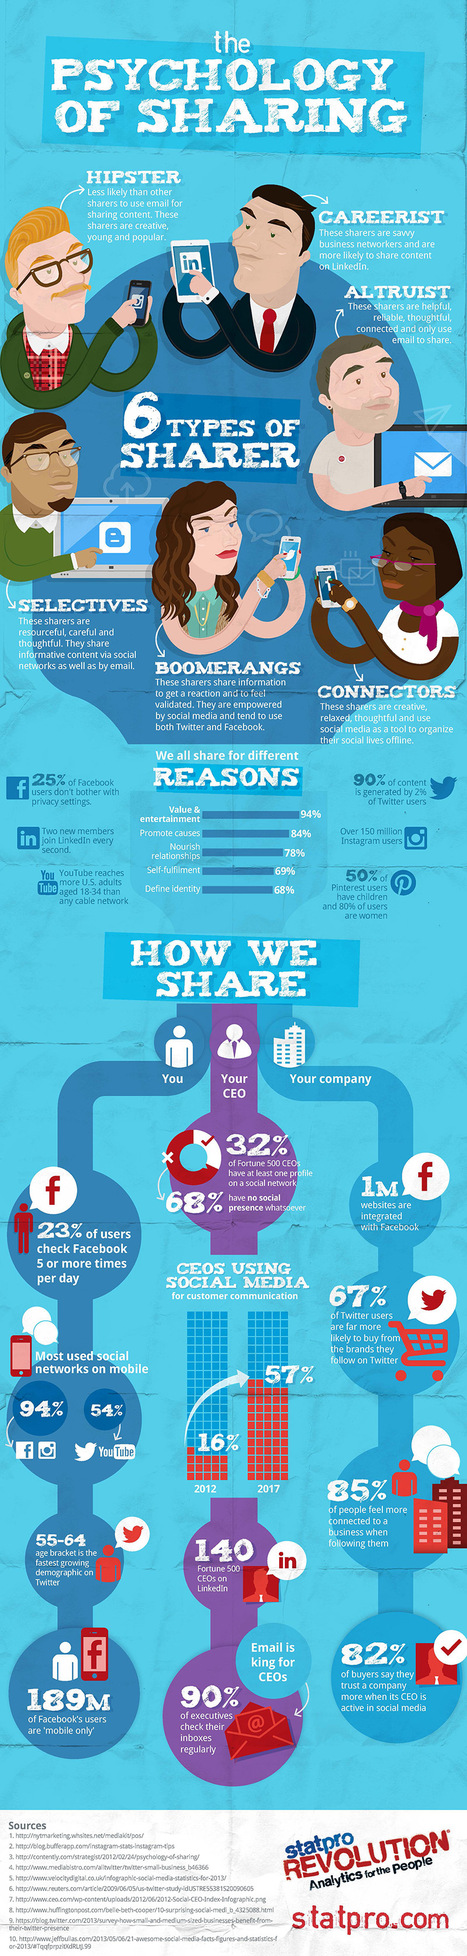 Infographic: The psychology of sharing | Life and Psychology | Scoop.it